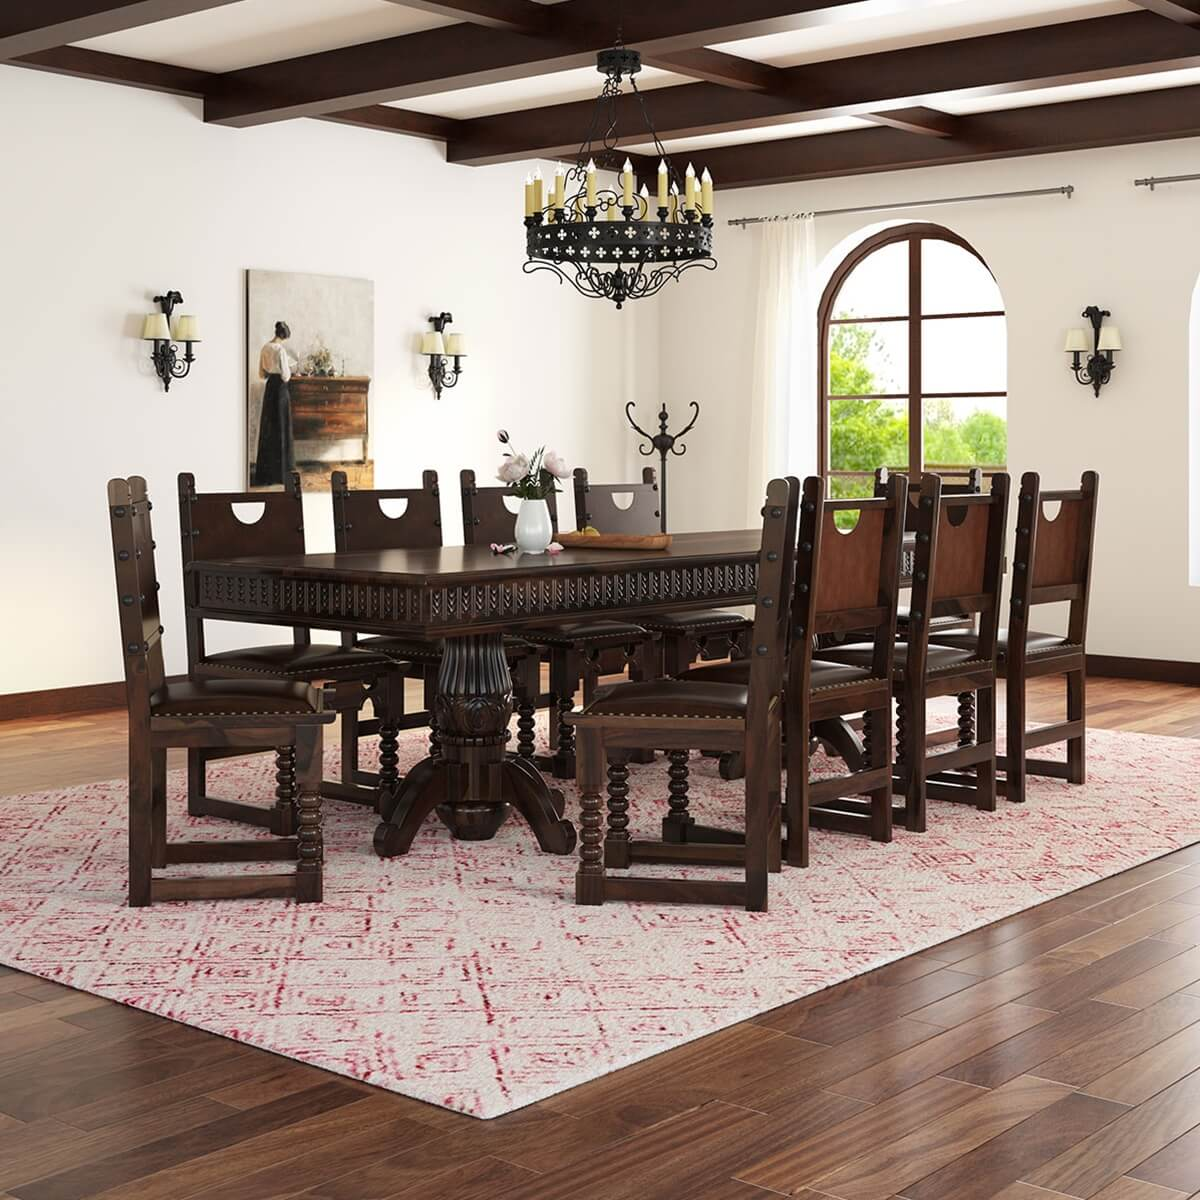 Nottingham solid wood large rustic dining room table chair set for Oak dining room table chairs